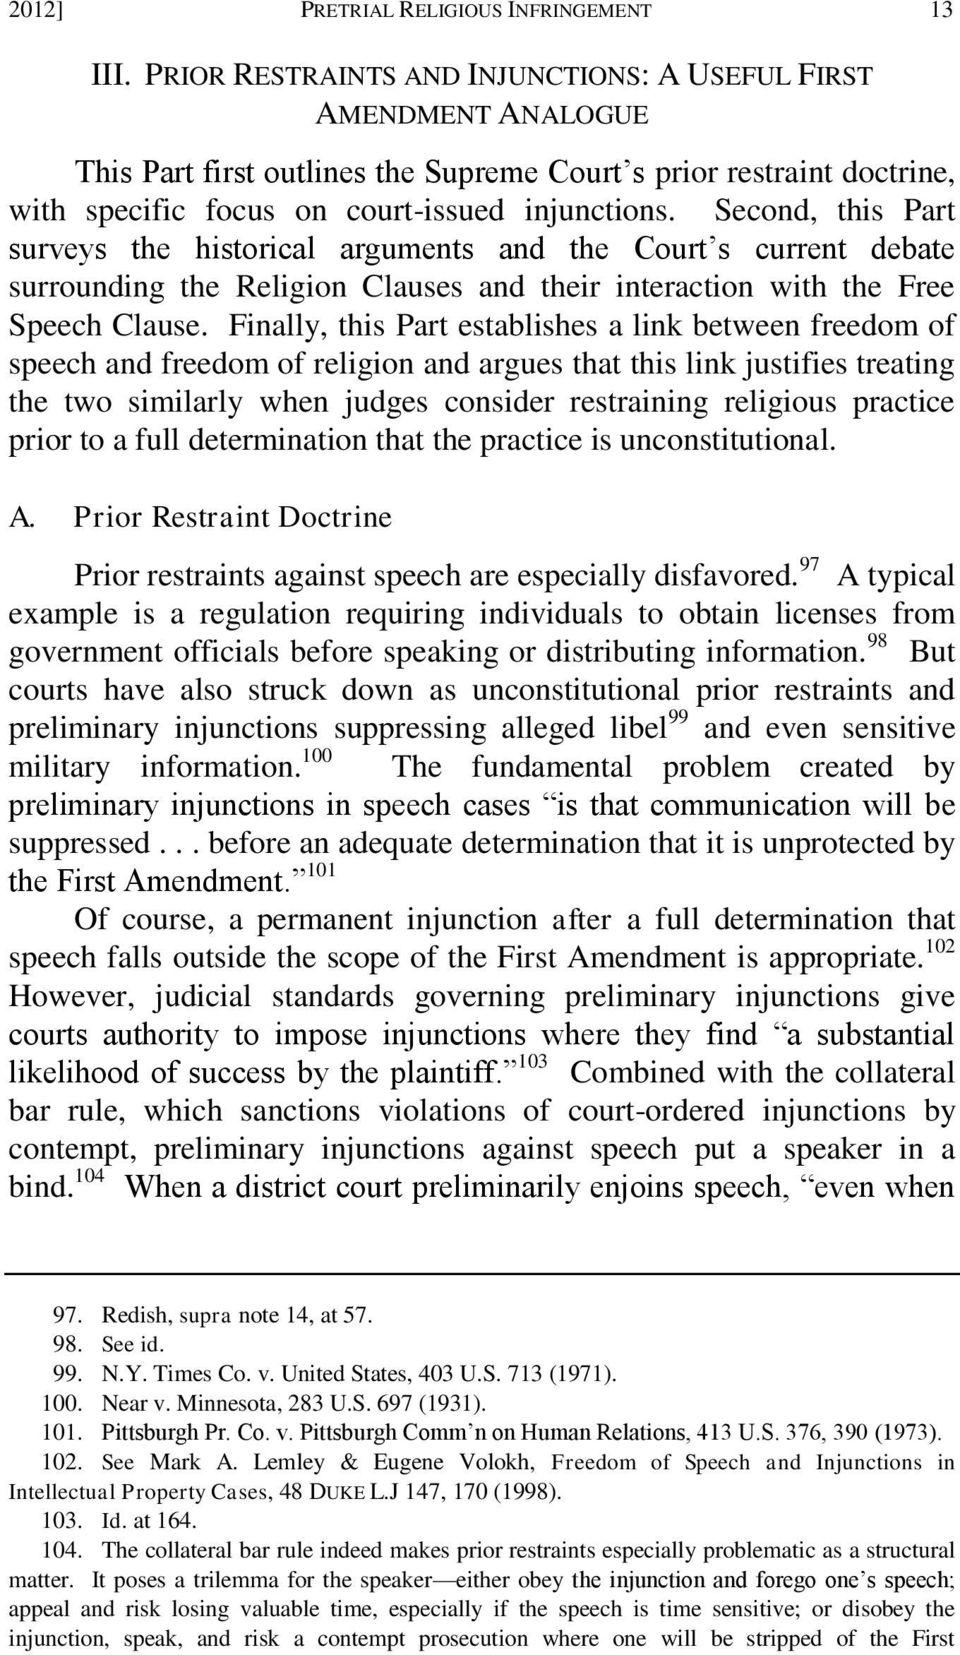 Second, this Part surveys the historical arguments and the Court s current debate surrounding the Religion Clauses and their interaction with the Free Speech Clause.